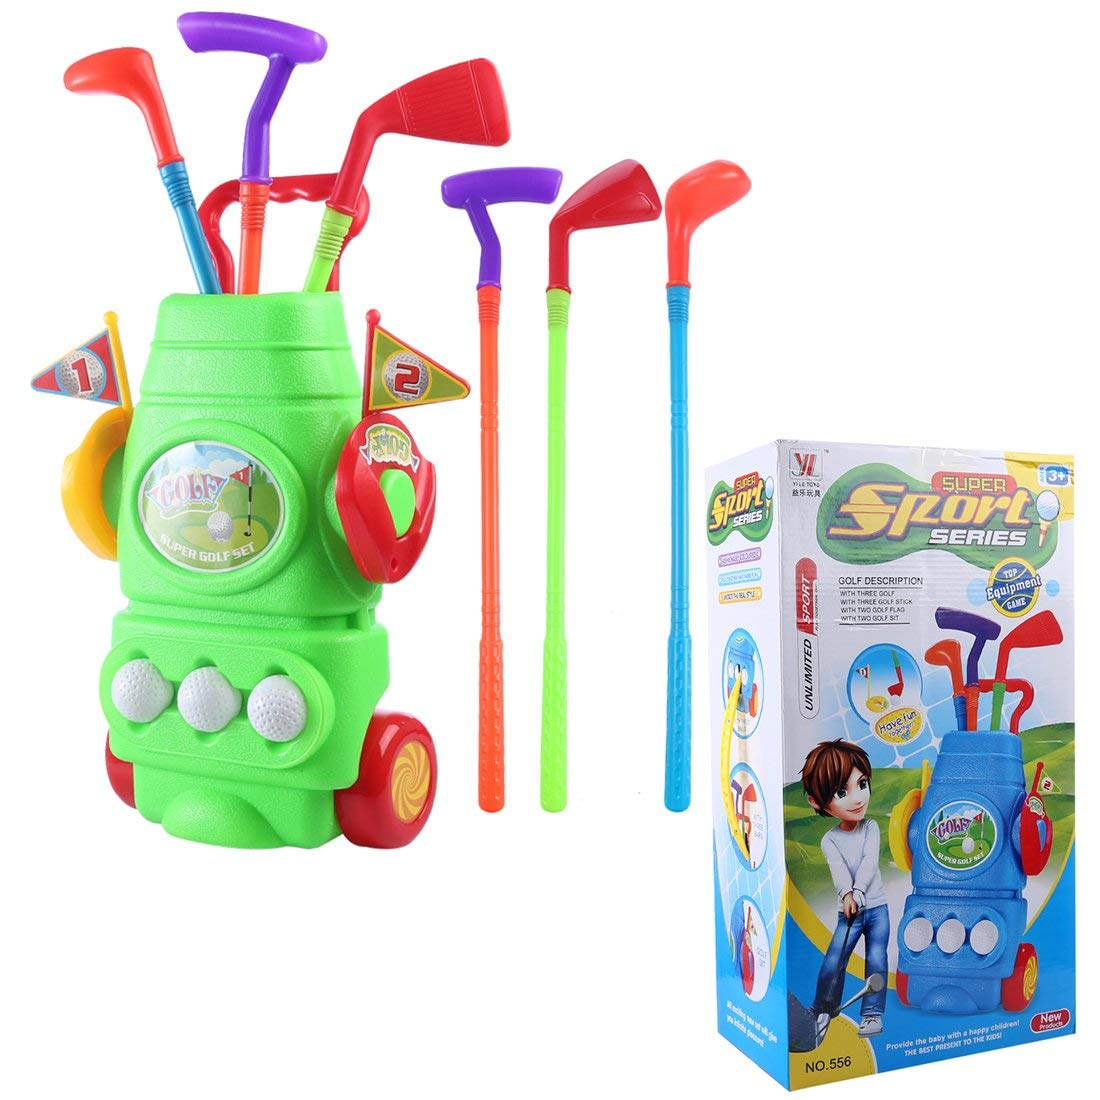 RuiyiF Golf Toy Set for Toddler Boys Girls, Plastic Golf Play Set for Kids 3-5 (3Golf Balls, 3Golf Clubs, 2Ball Holes,1Trolley Case)